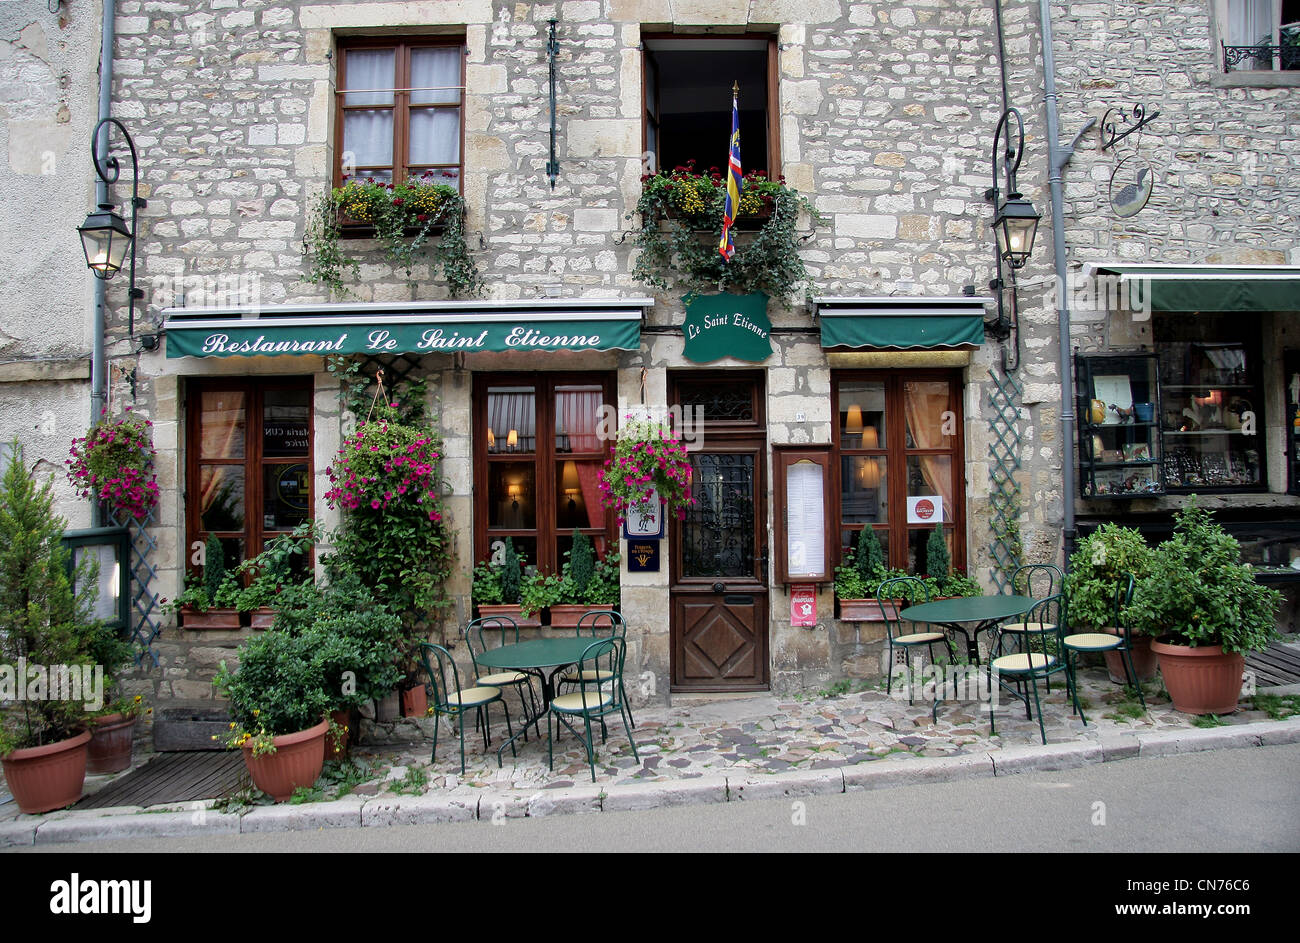 Vezelay France Pittoresk Typical French House Building Tourism Restaurant